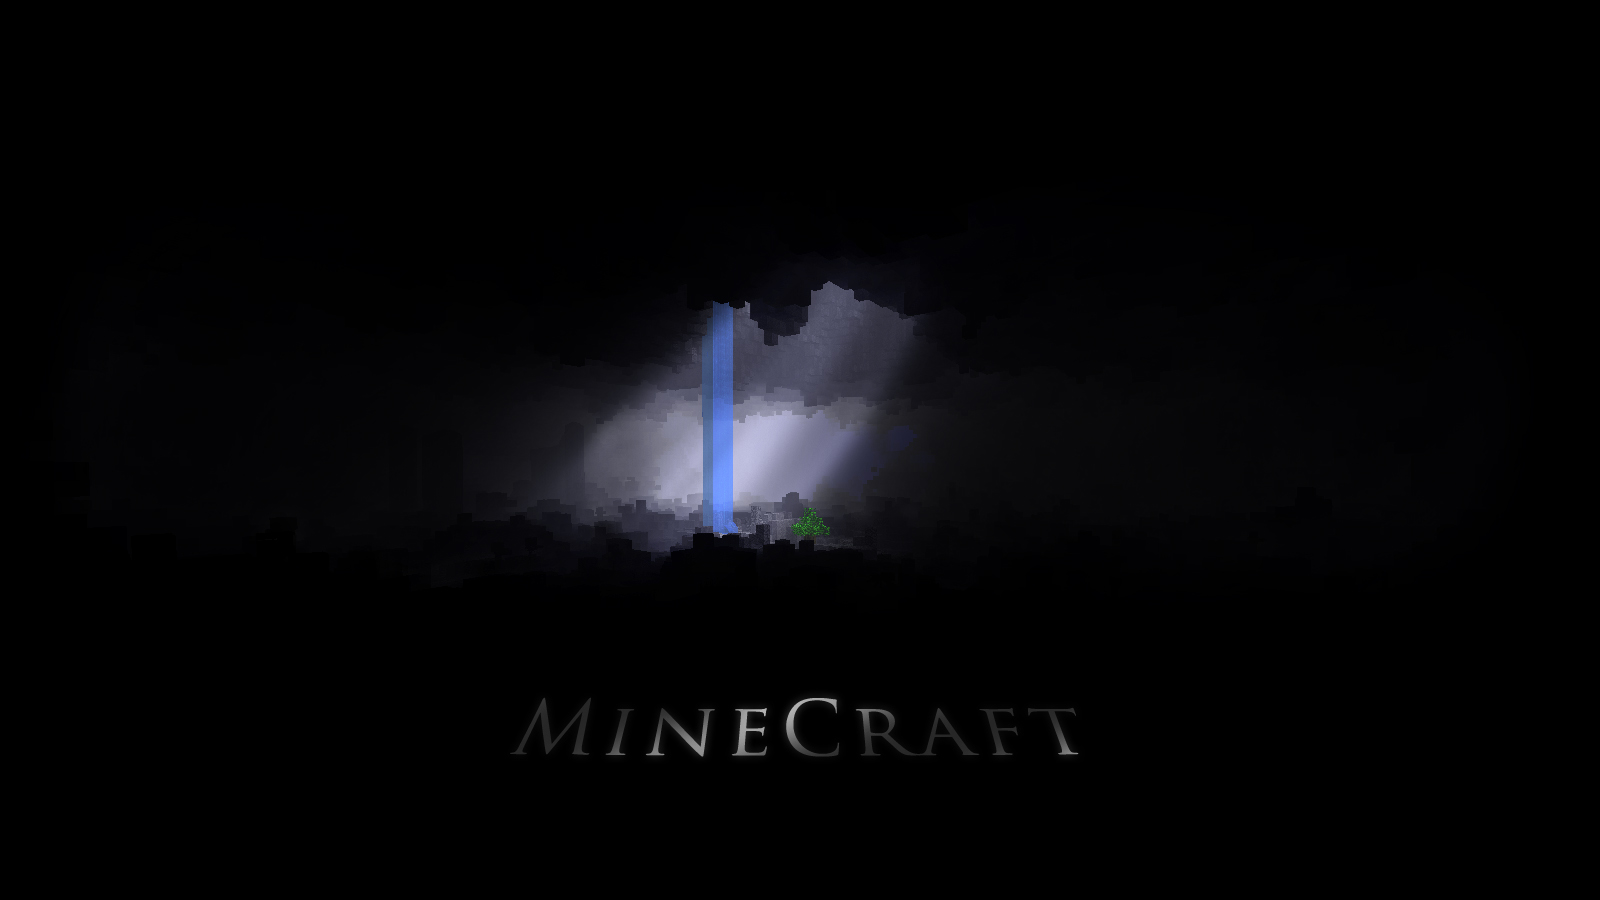 Minecraft Wallpaper - Download